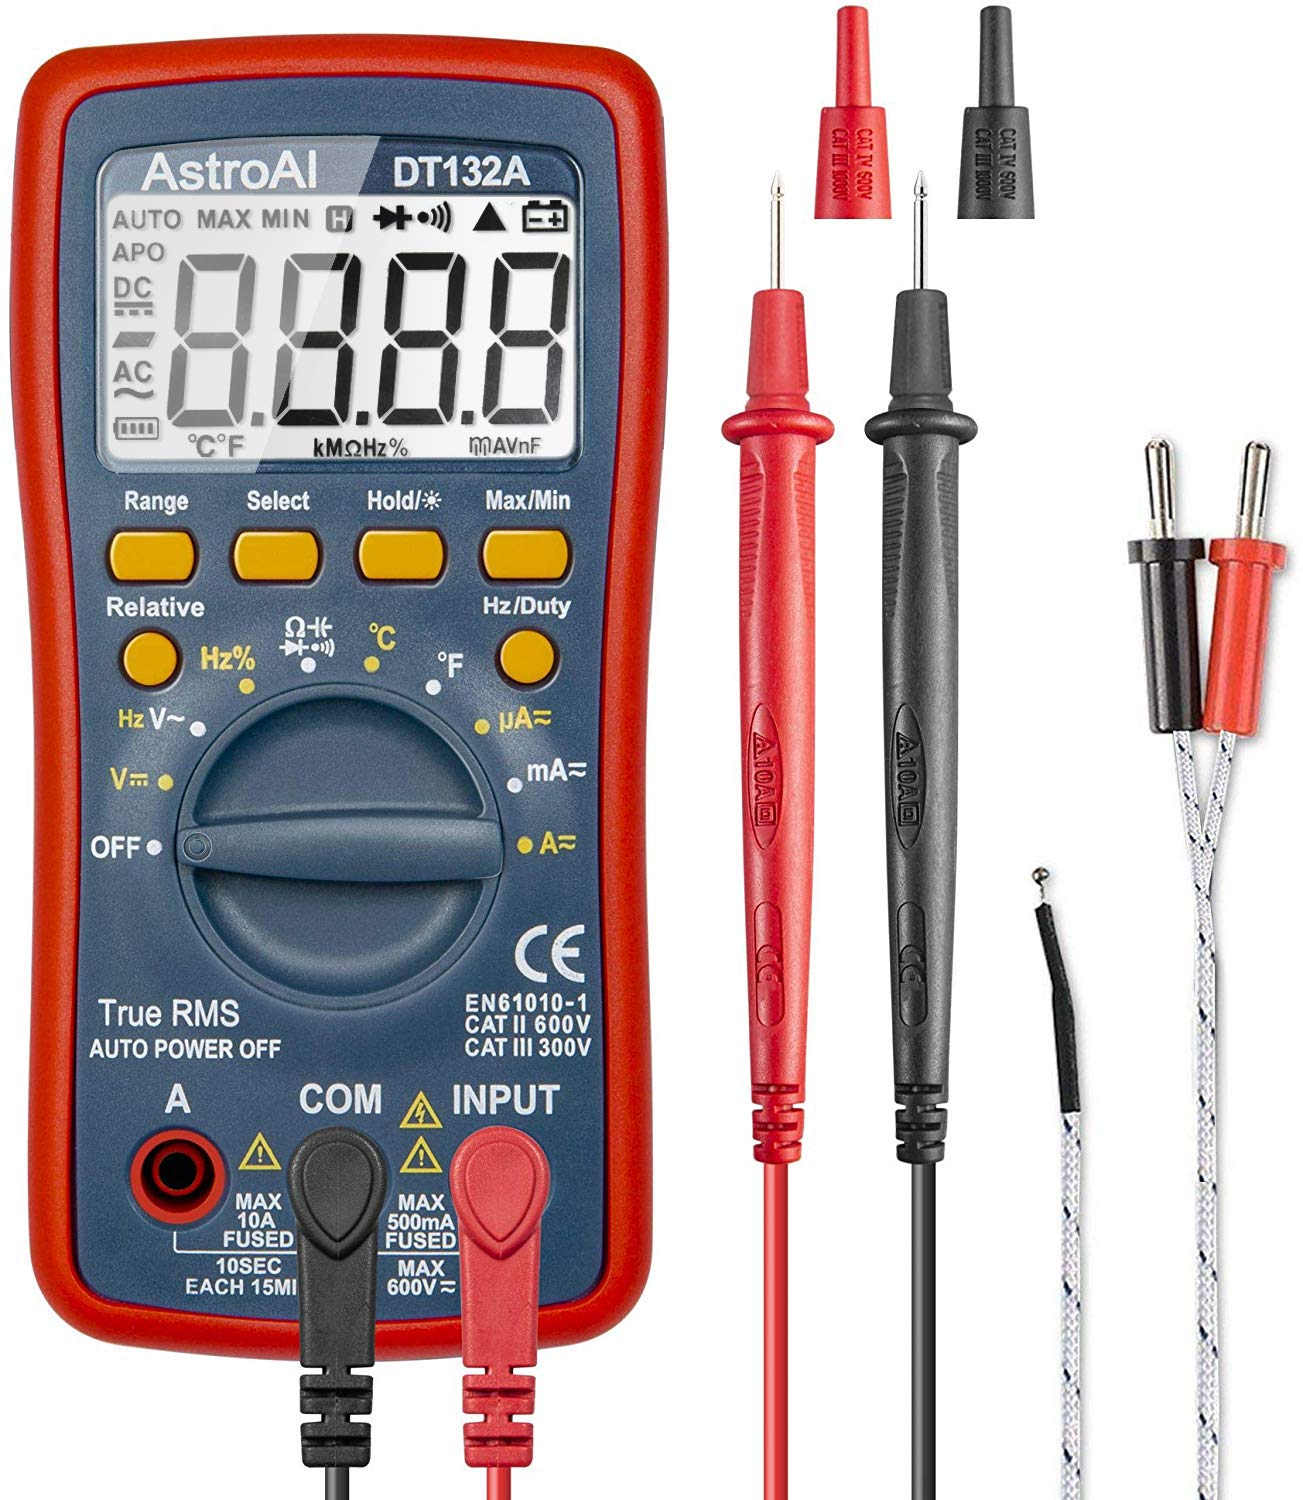 AstroAI Digital Multimeter, TRMS 4000 Counts Volt Meter Manual and Auto Ranging; Measures Voltage Tester, Current, Resistance, Continuity, Frequency; Tests Diodes, Temperature, Red by AstroAI